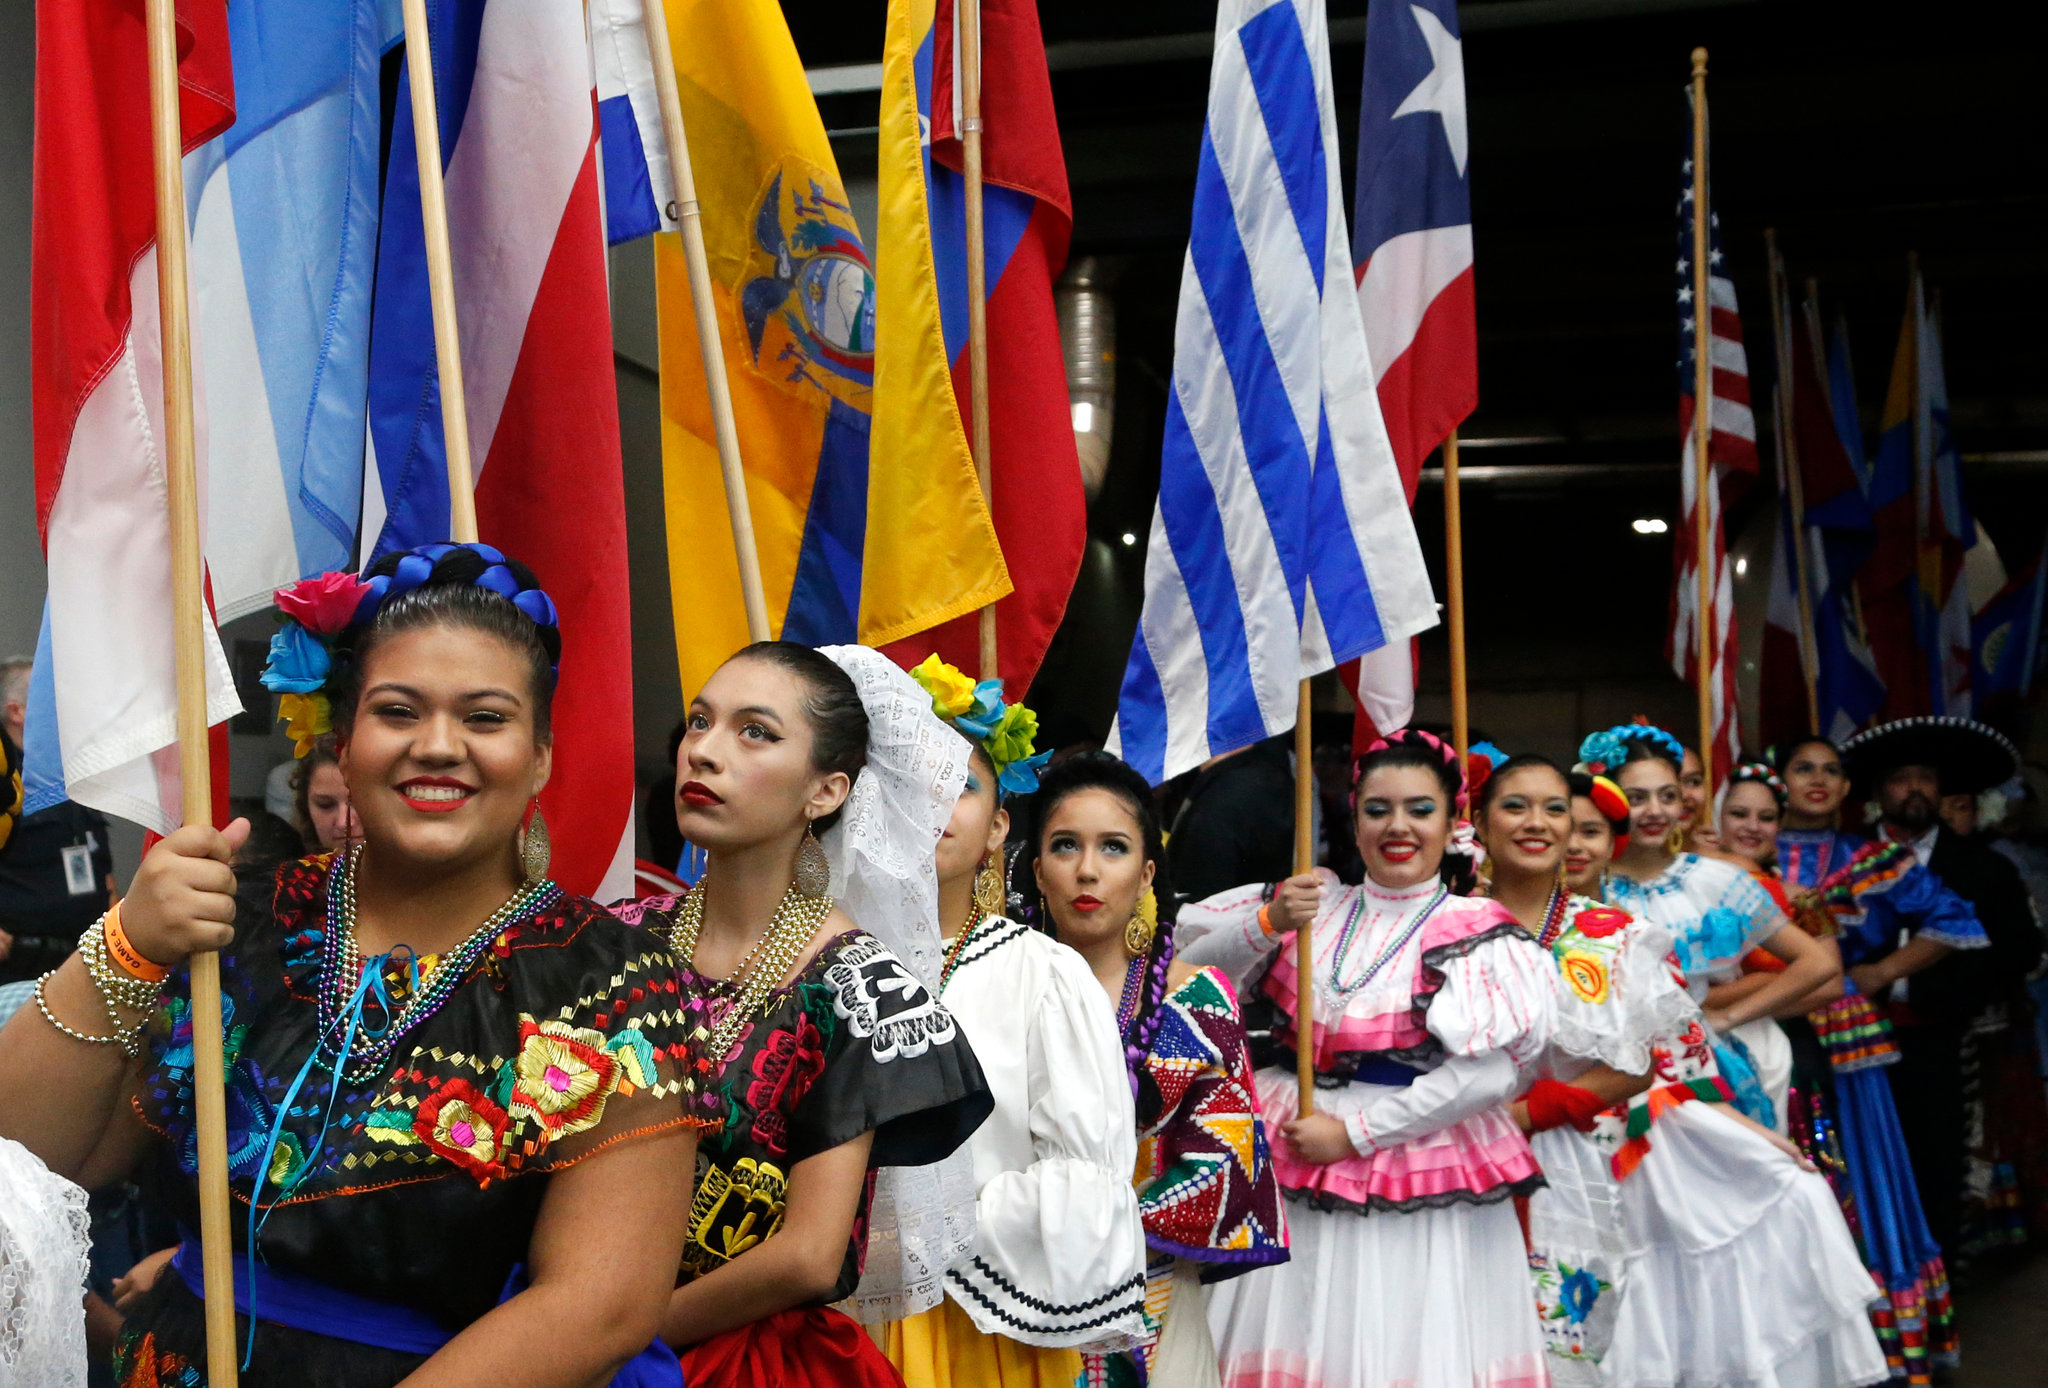 Latina women in cultural clothing carrying flags